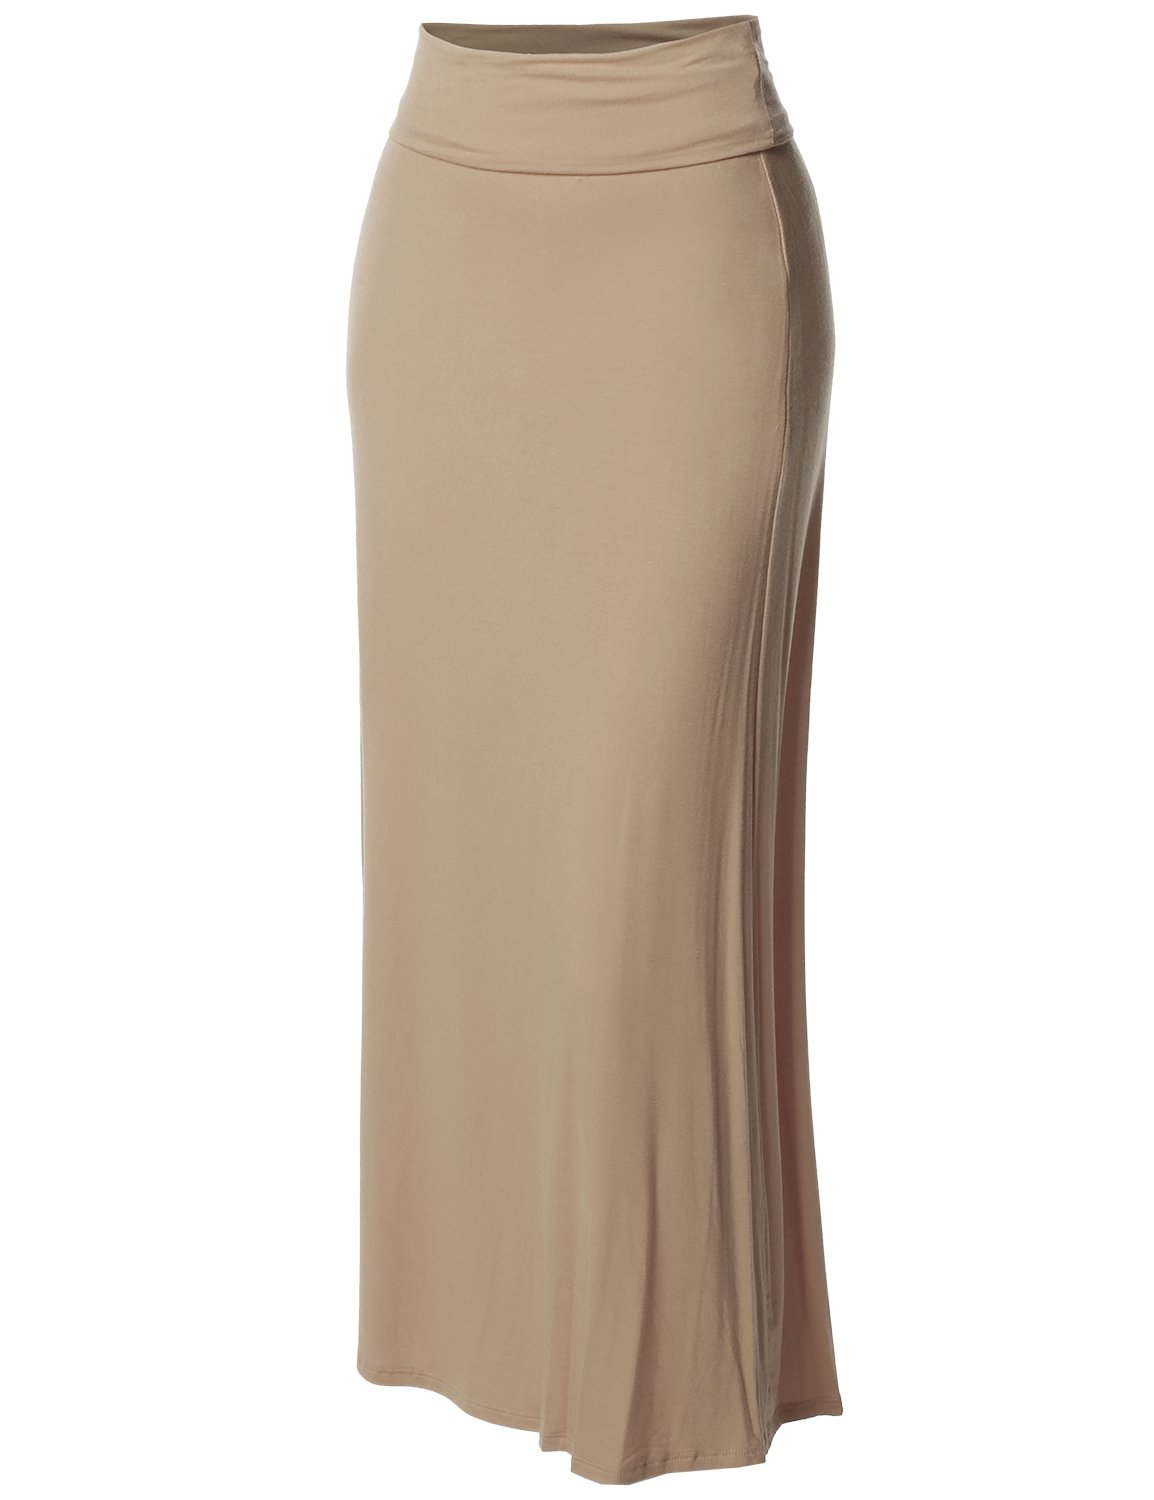 Stylish Fold Over Flare Long Maxi Skirt - Made in USA Beige M